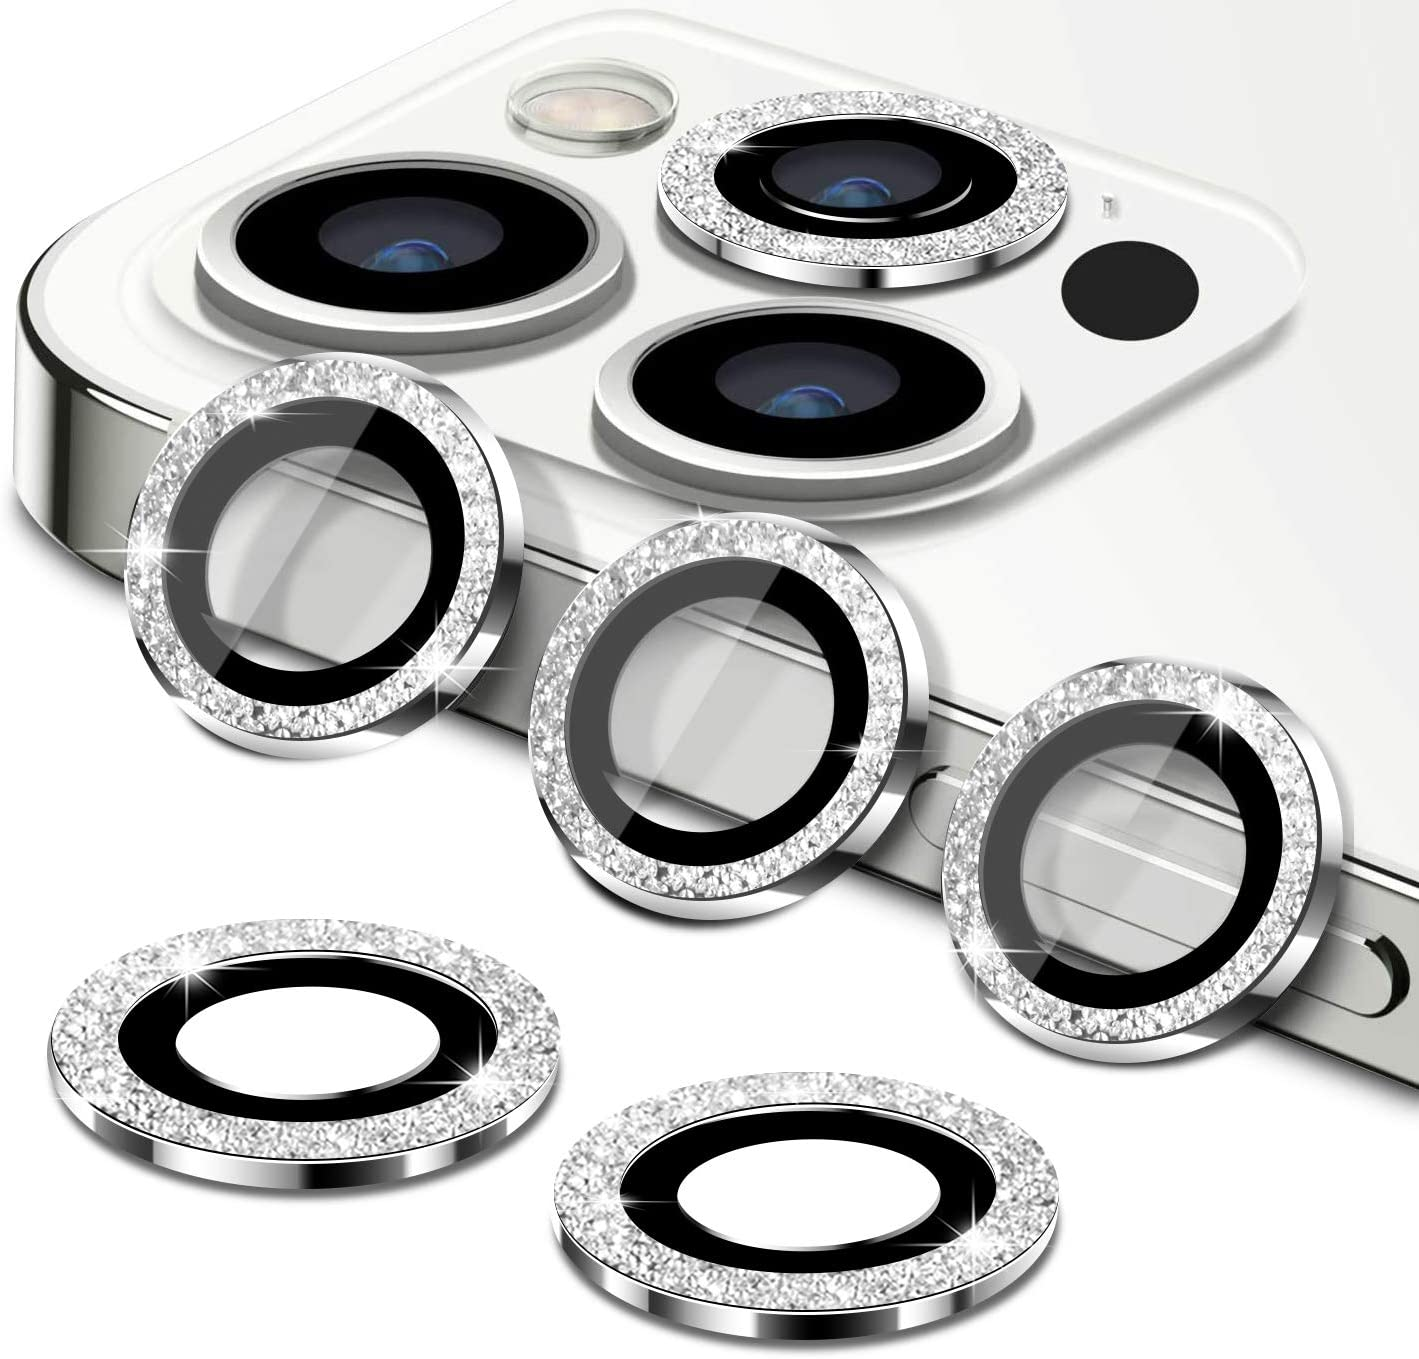 [6PCS] Camera Lens Protector for iPhone 12 Pro Max 6.7'', HD Tempered Glass Aluminum Alloy Lens Protection Ring Film, Anti-Scratch/Anti-Drop/Anti-Dust (Sparkling)